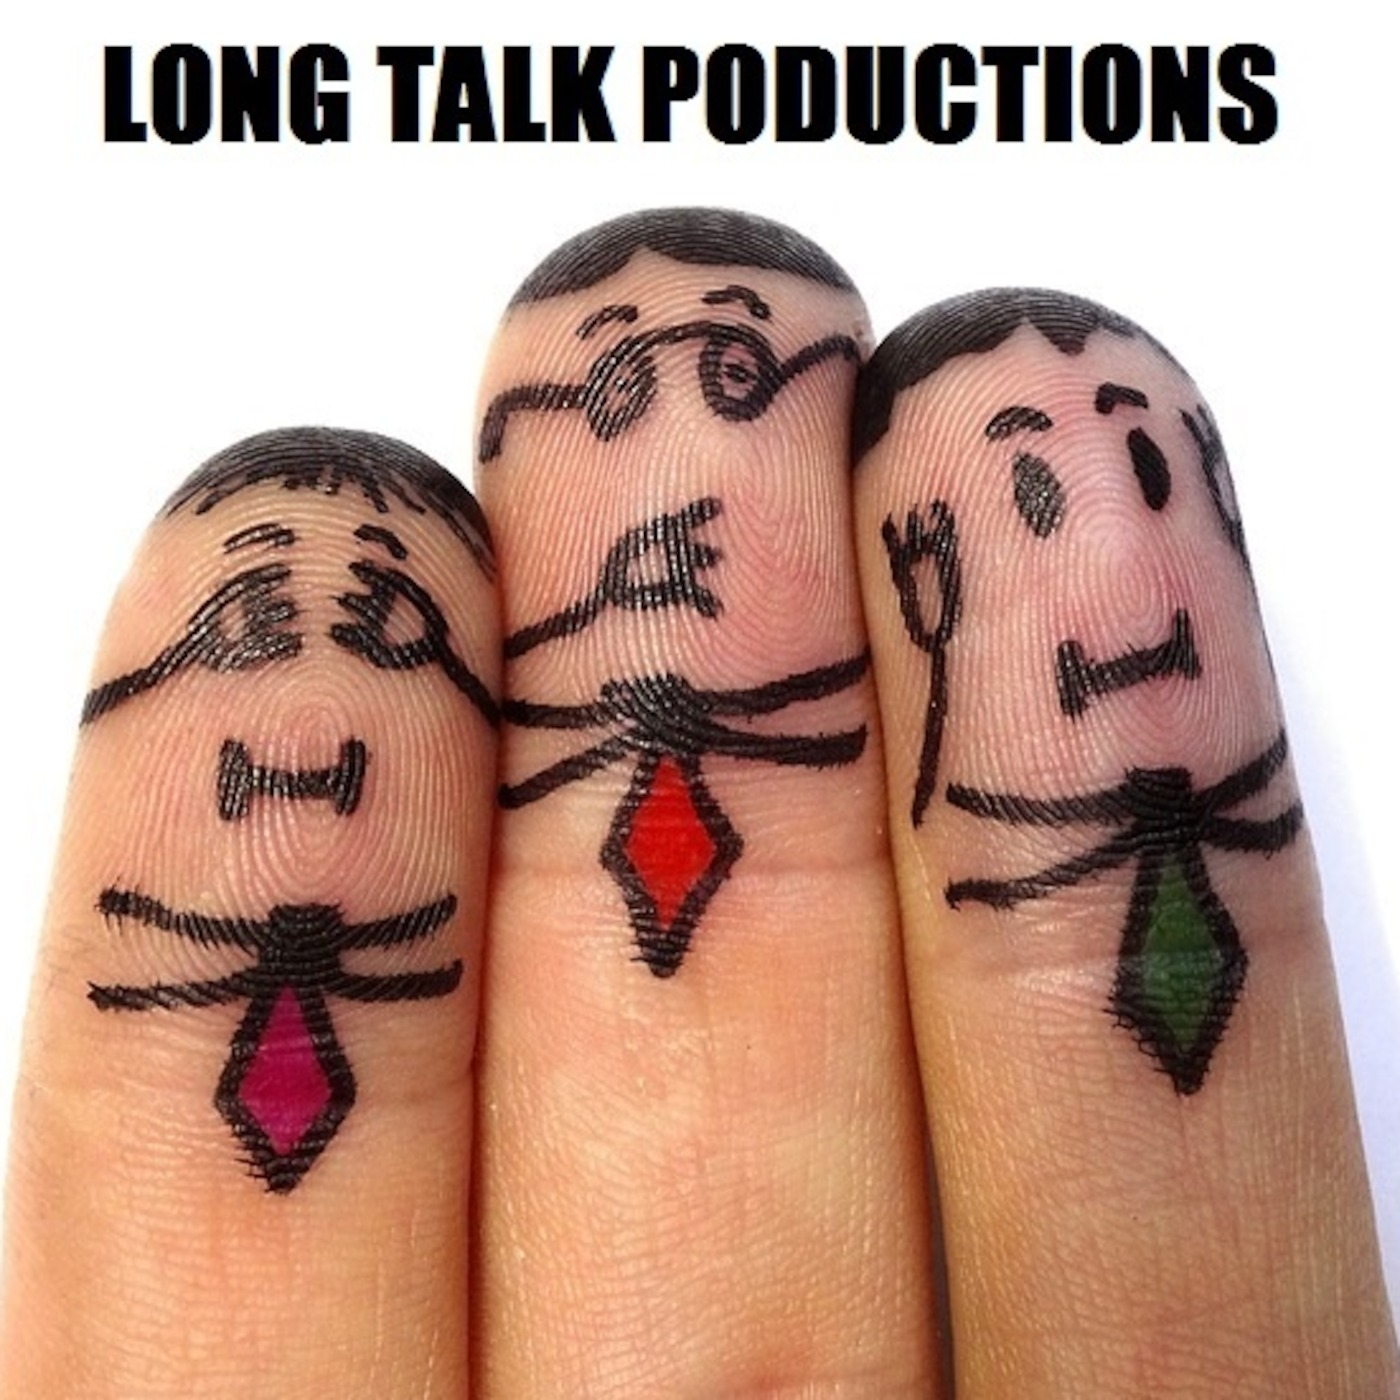 Long Talk Poductions